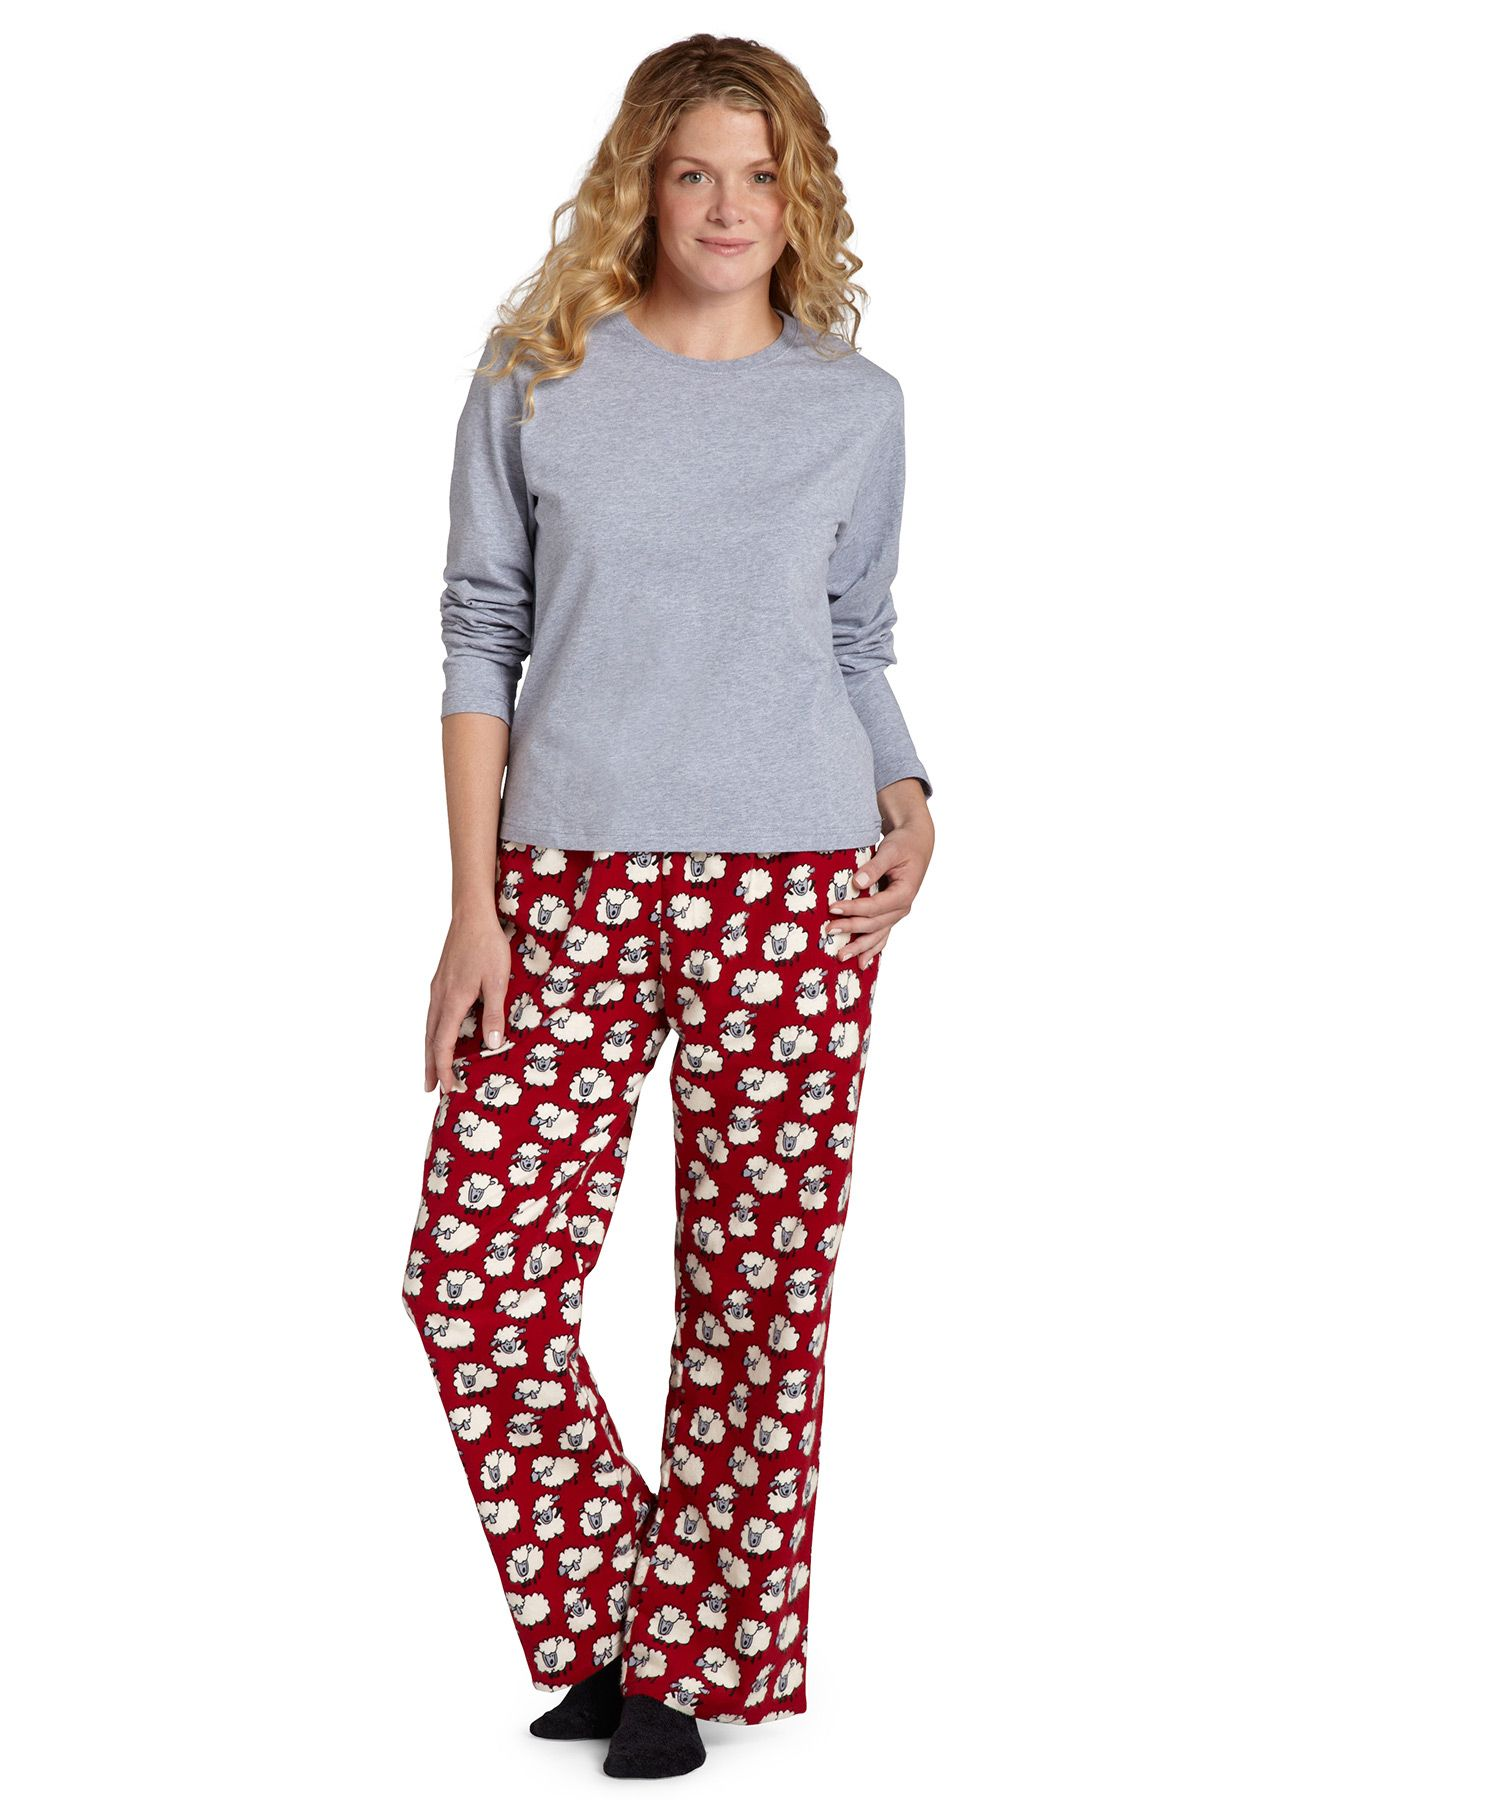 17 Best images about Flannel Pajamas For Women on Pinterest ...